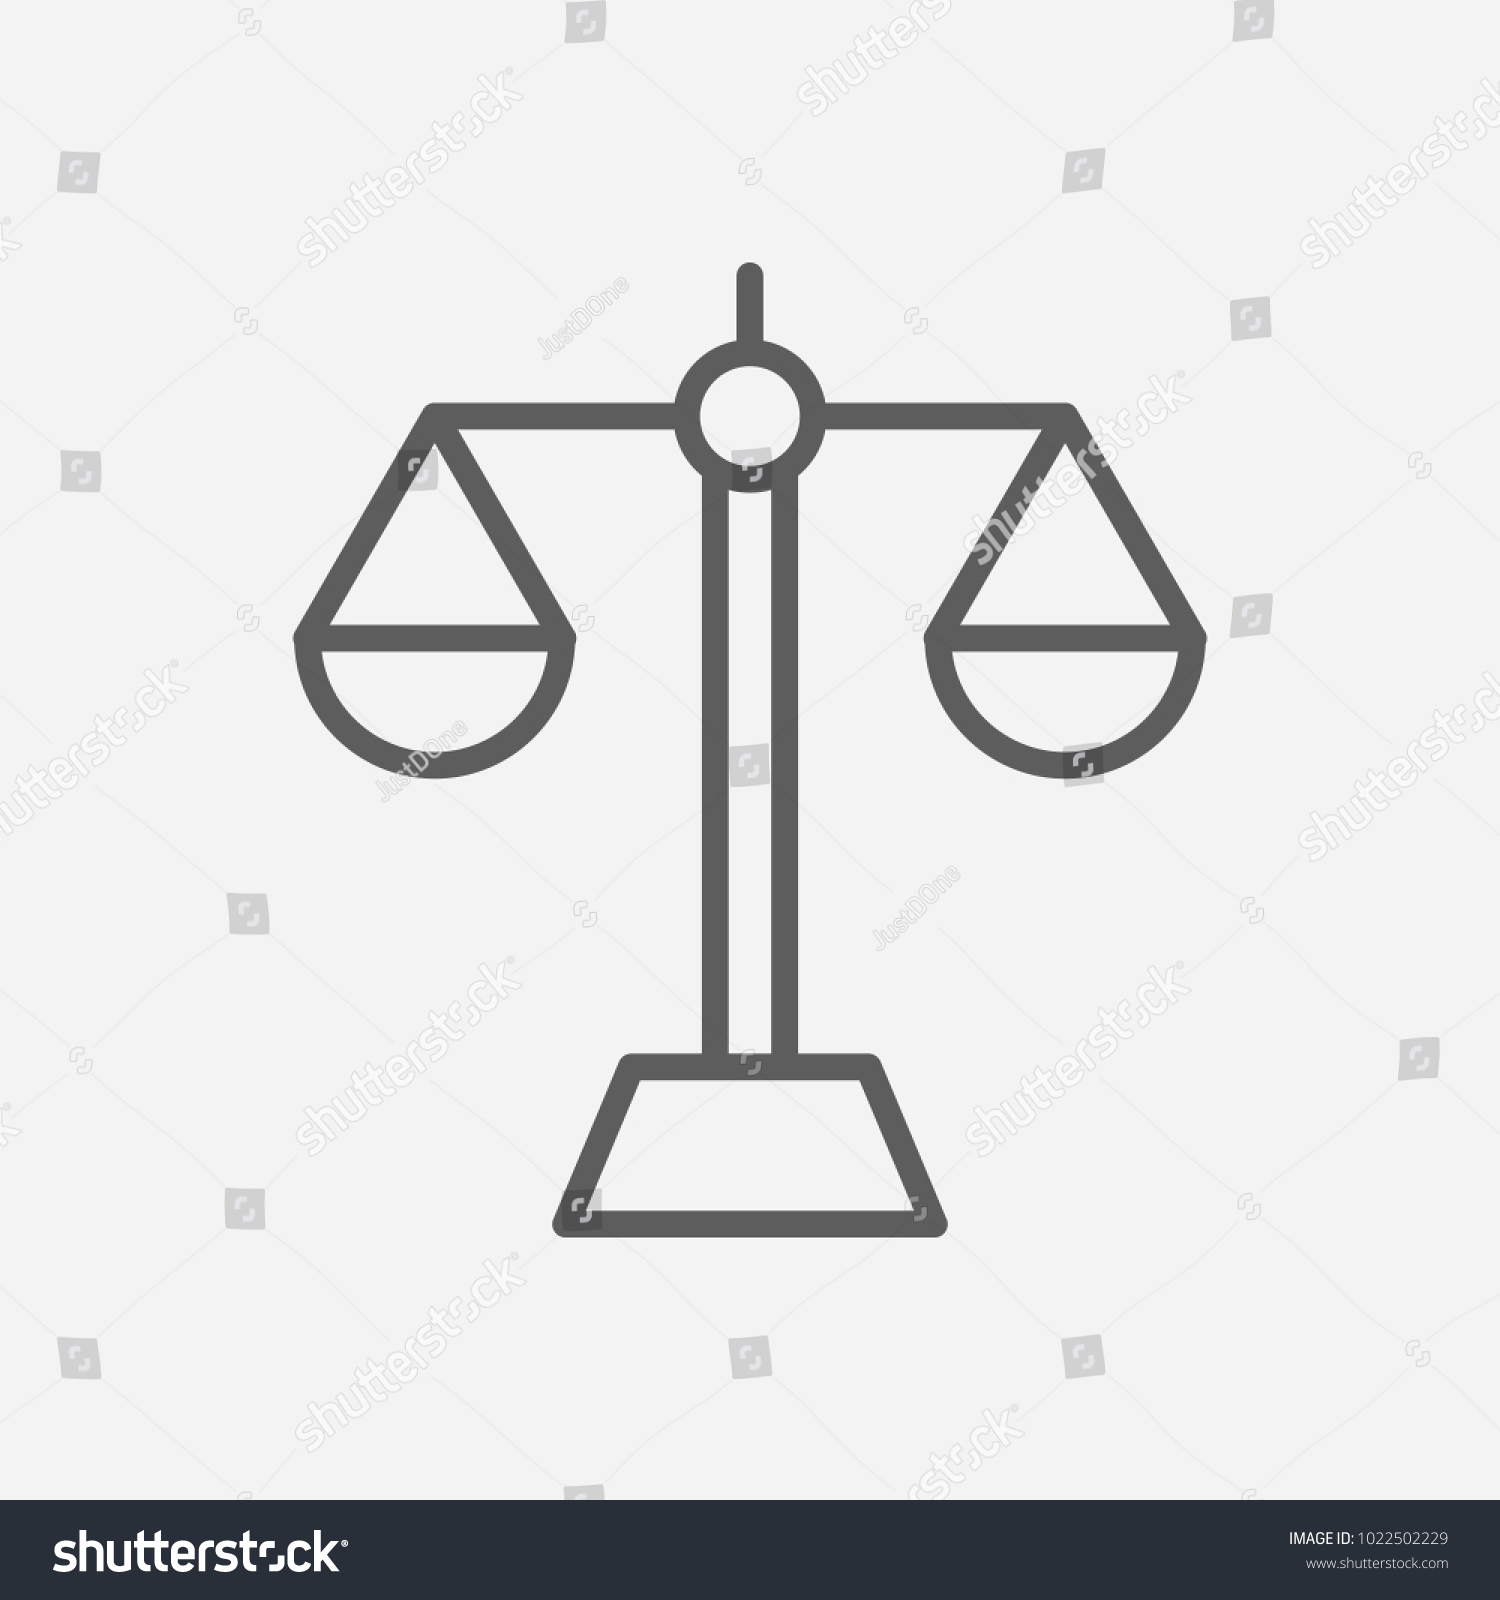 Balance icon line symbol isolated vector stock vector 1022502229 balance icon line symbol isolated vector illustration of icon sign concept for your web site buycottarizona Gallery